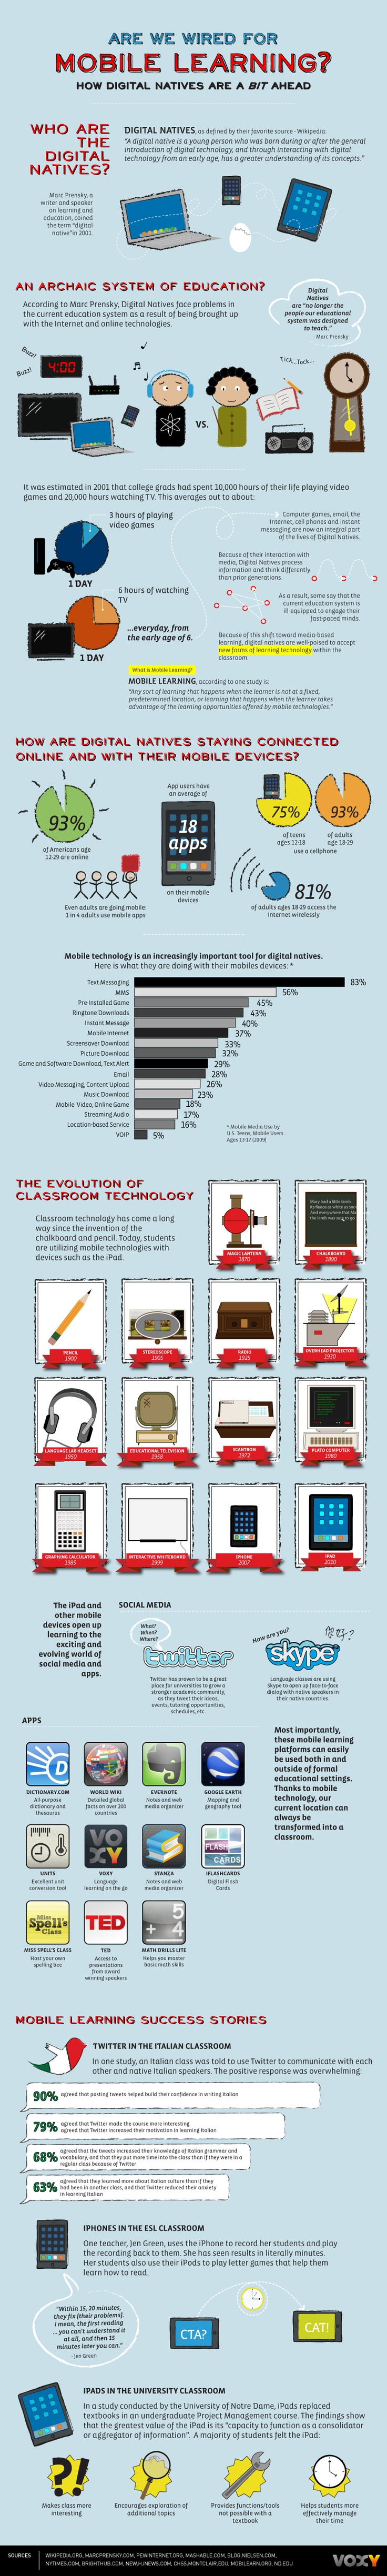 """This Infographic poster is an excellent visual summary about m-learning (mobile learning) and the changing nature of our students as being """"digital"""